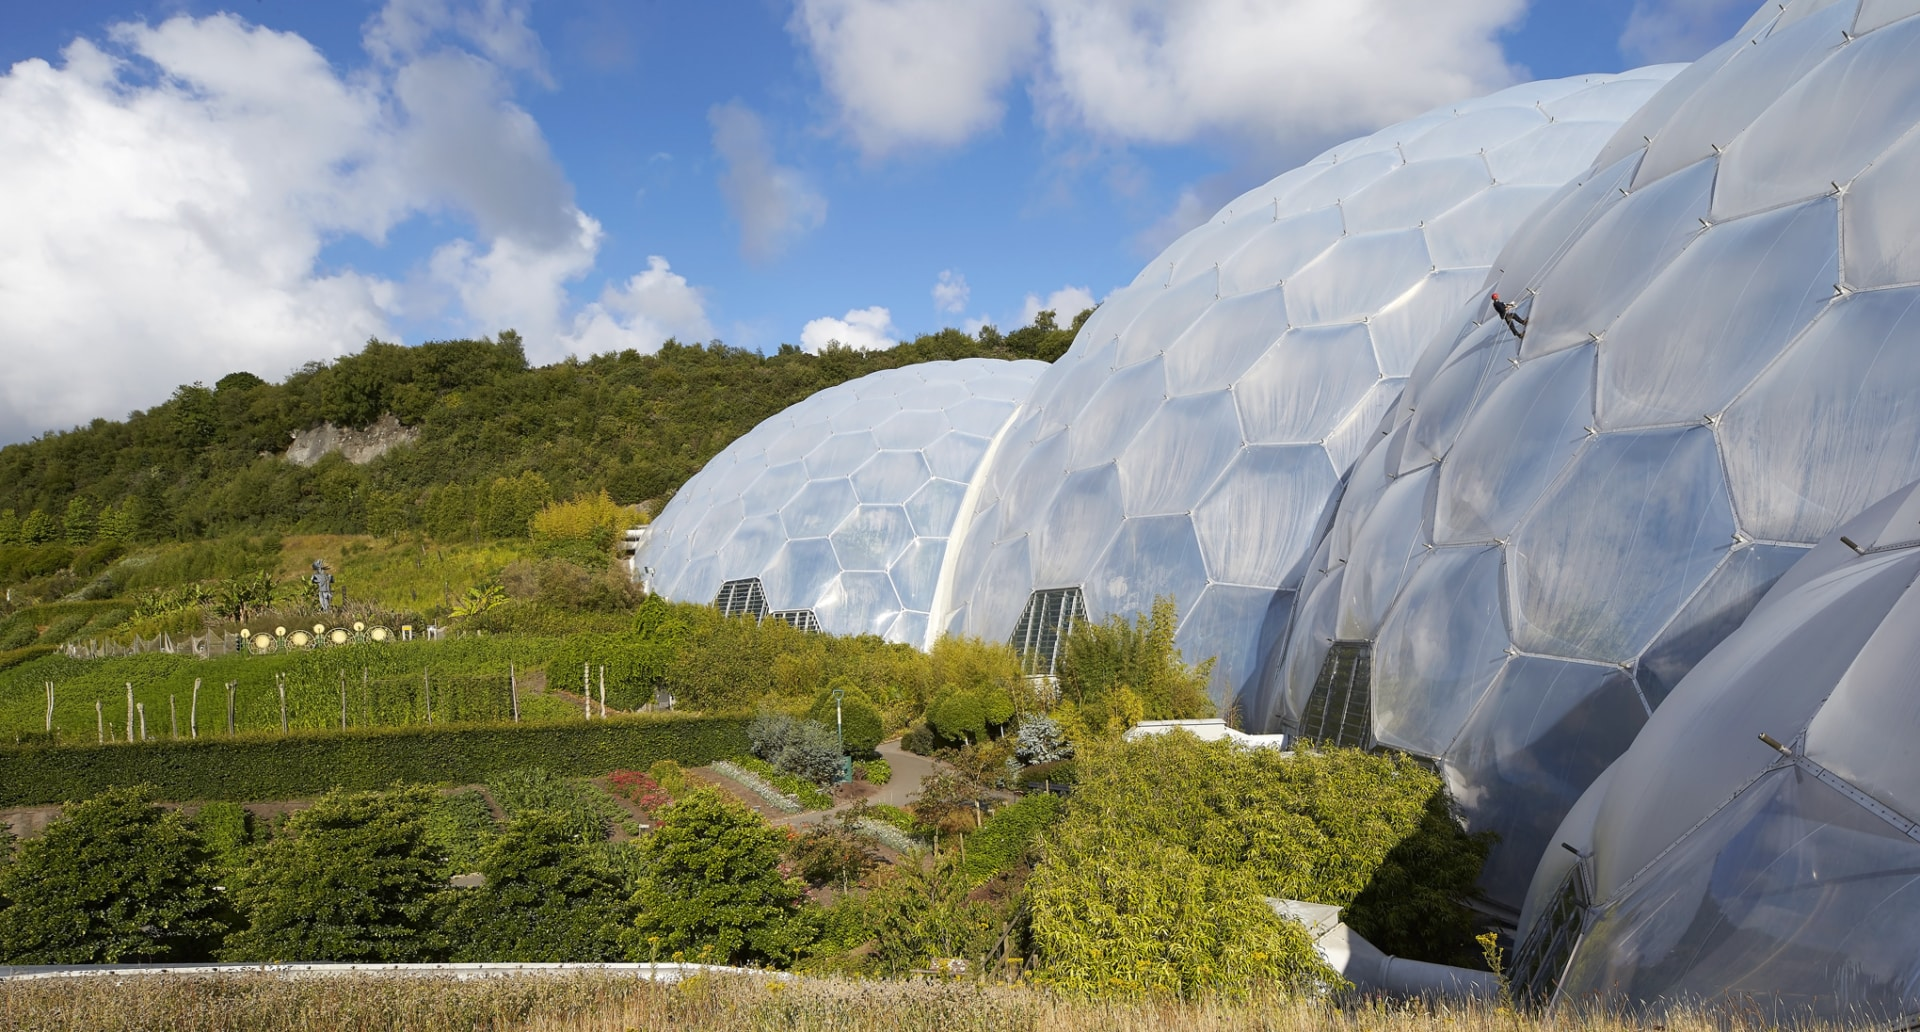 The Eden Project, located in Cornwall UK, is a one-of-a-kind project that set the tone for the next generation of sustainable botanical and zoo projects.